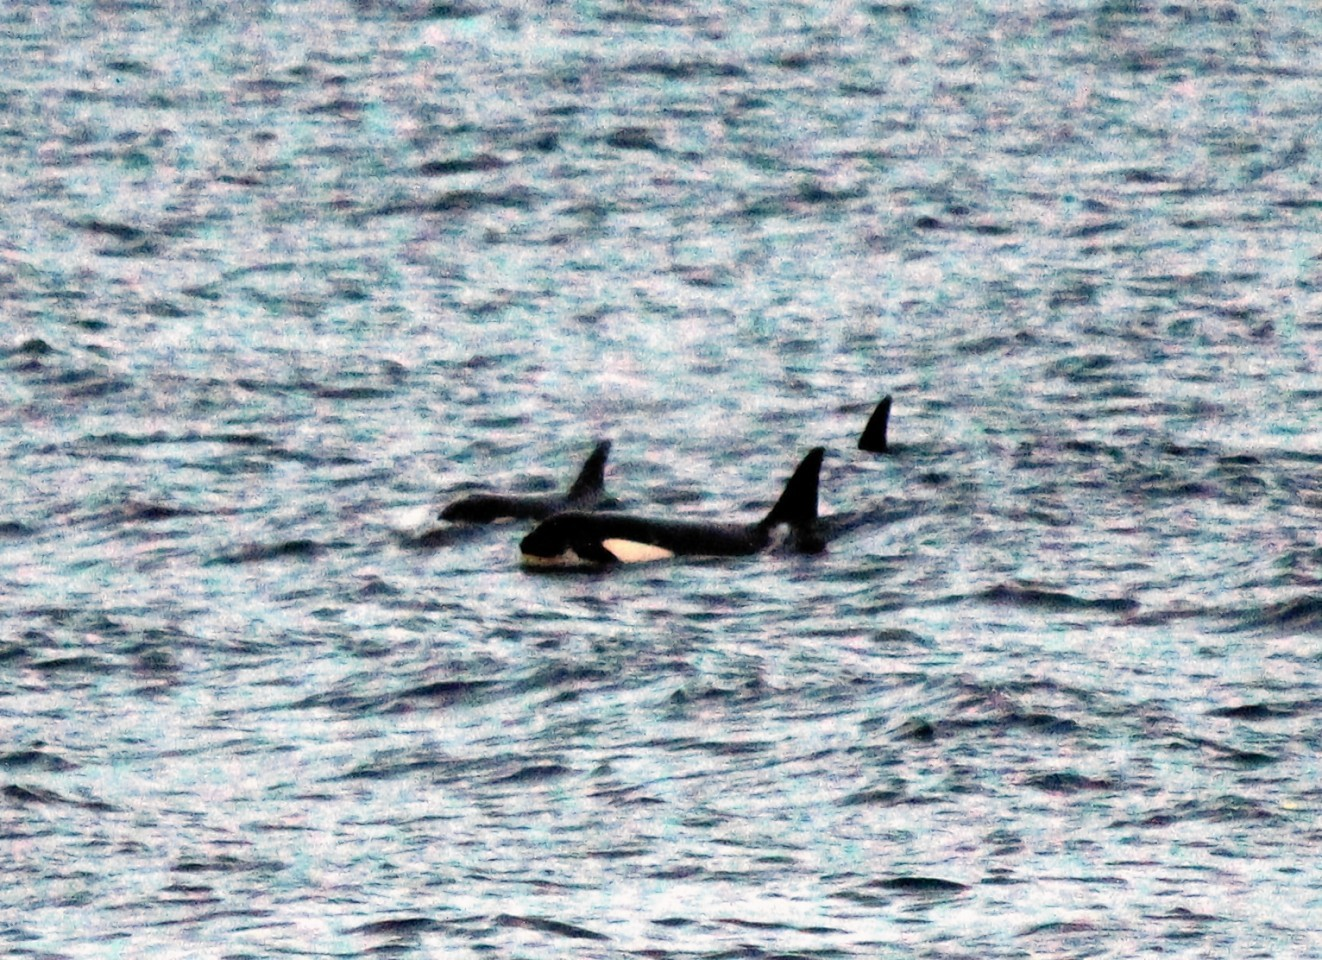 The orcas were photographed by amateur wildlife photographer David Beedie.